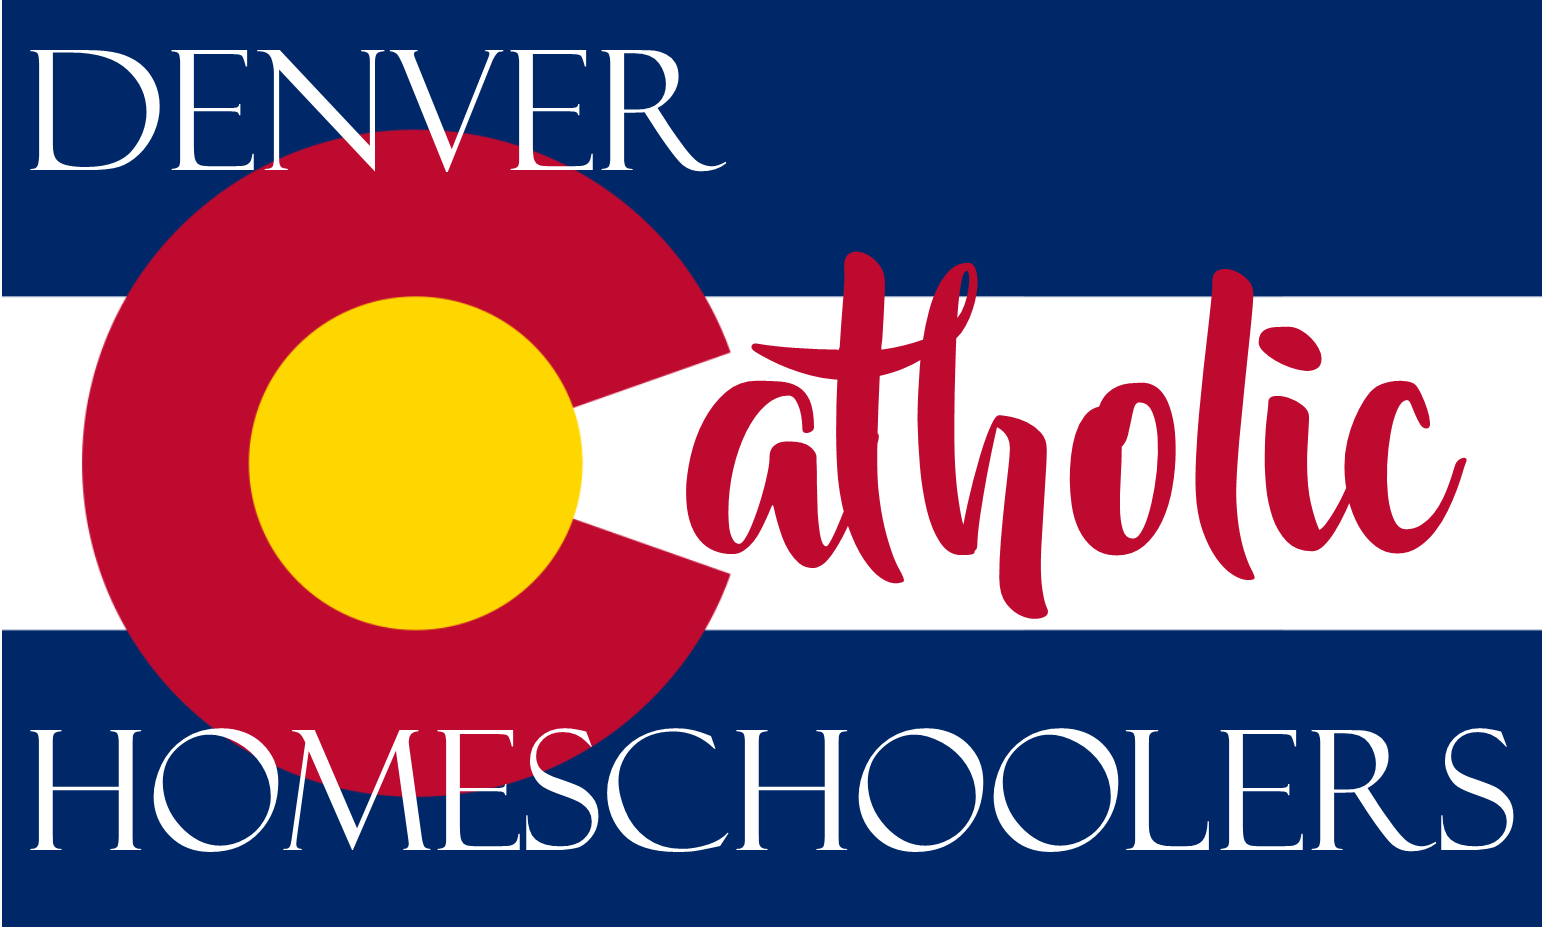 Denver Catholic Homeschoolers